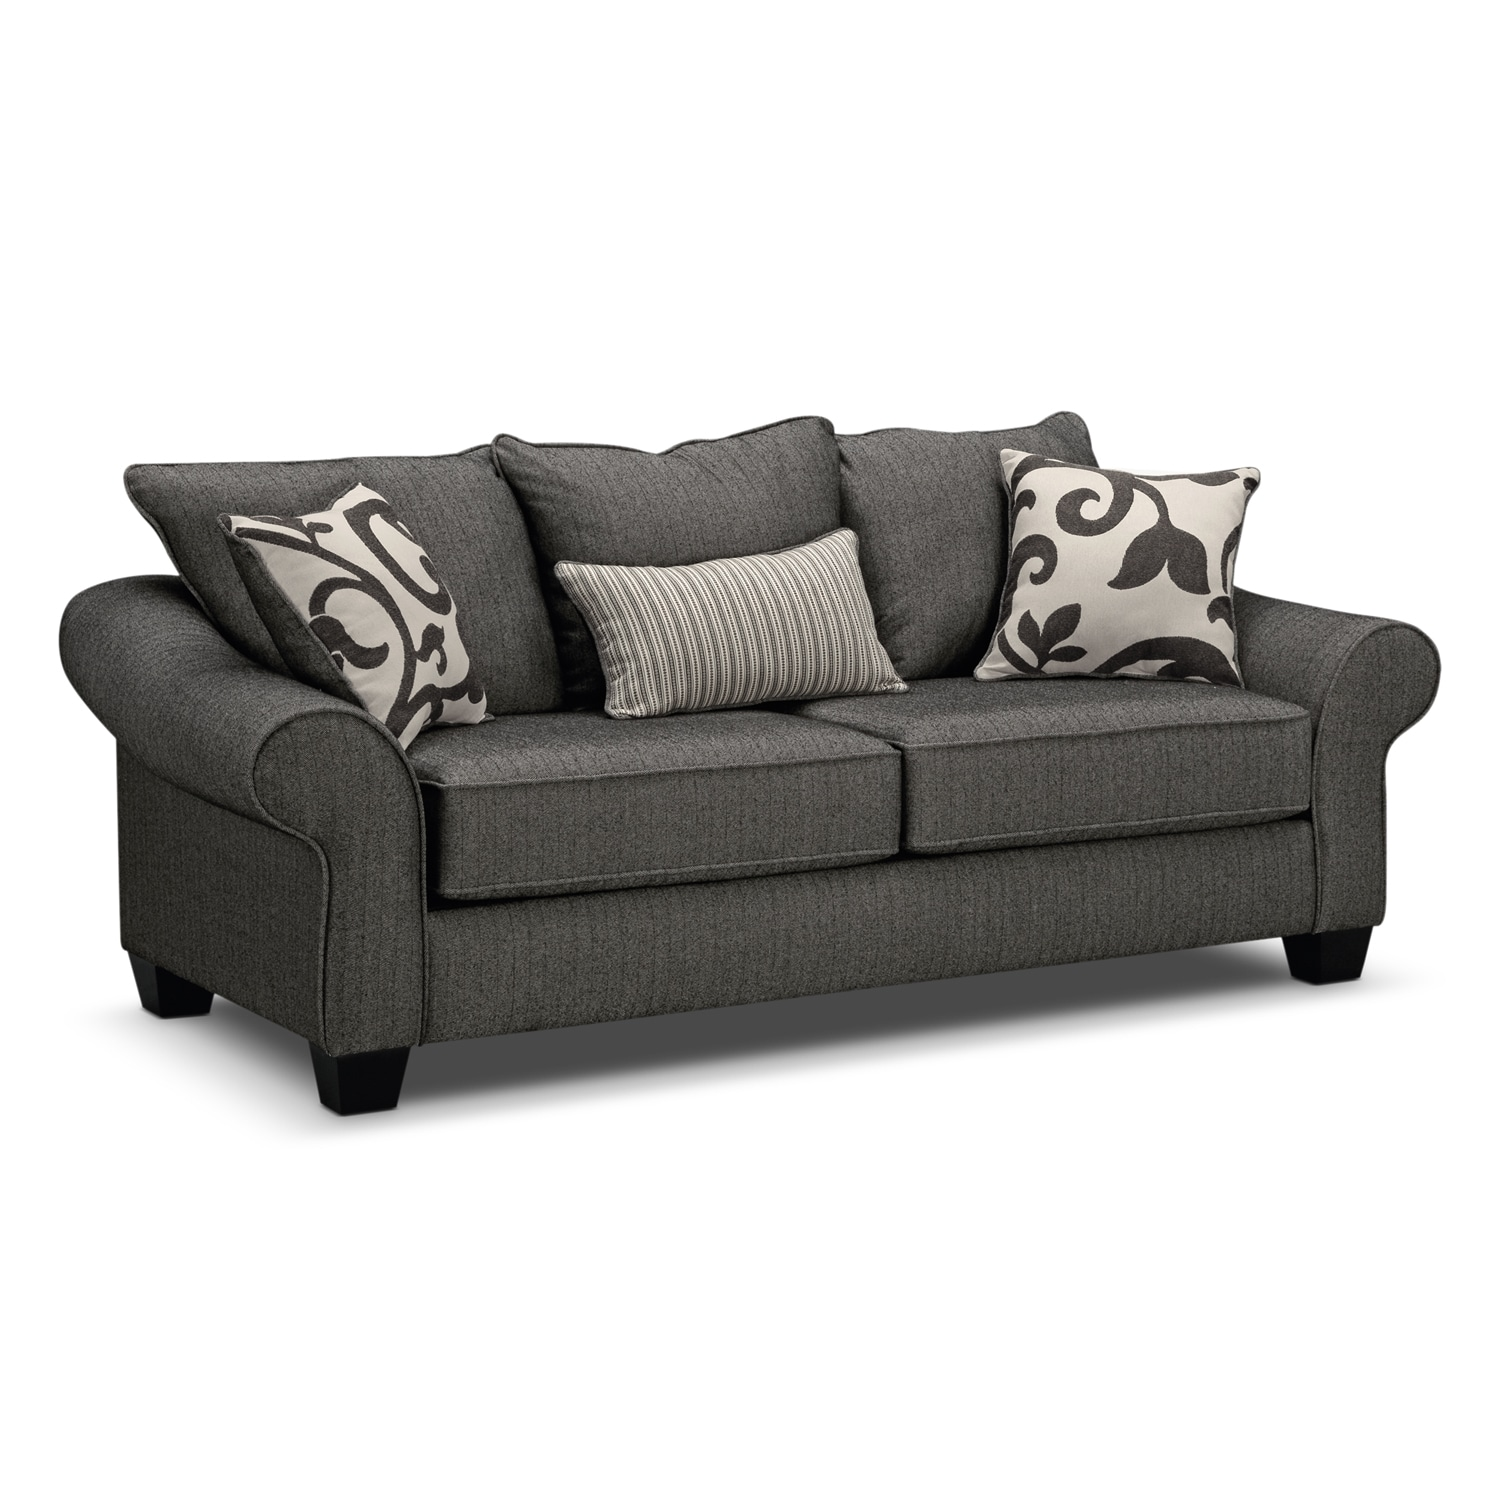 grey gray sectional of small ideas with best couch living the pin room sofa